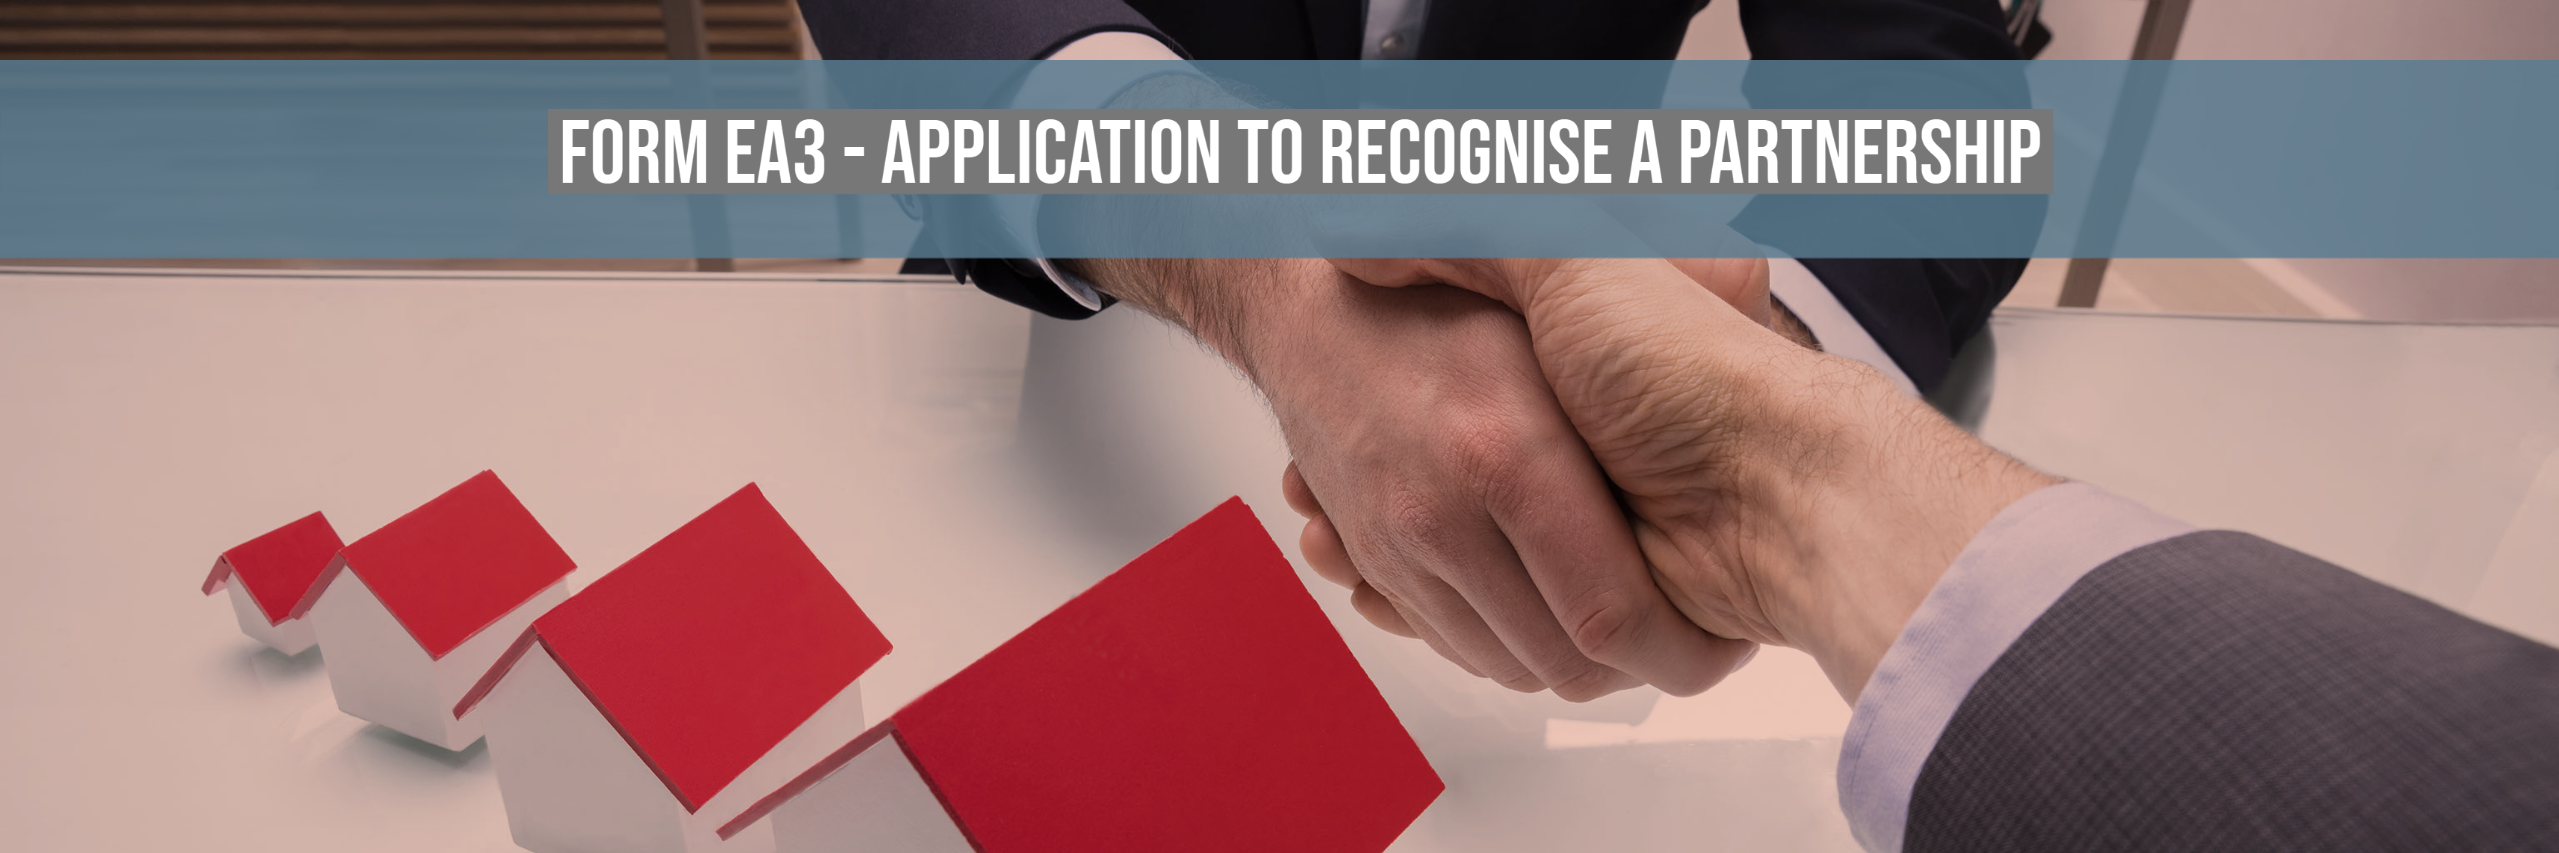 FORM EA3_1 - Application to Recognize a Partnership.png